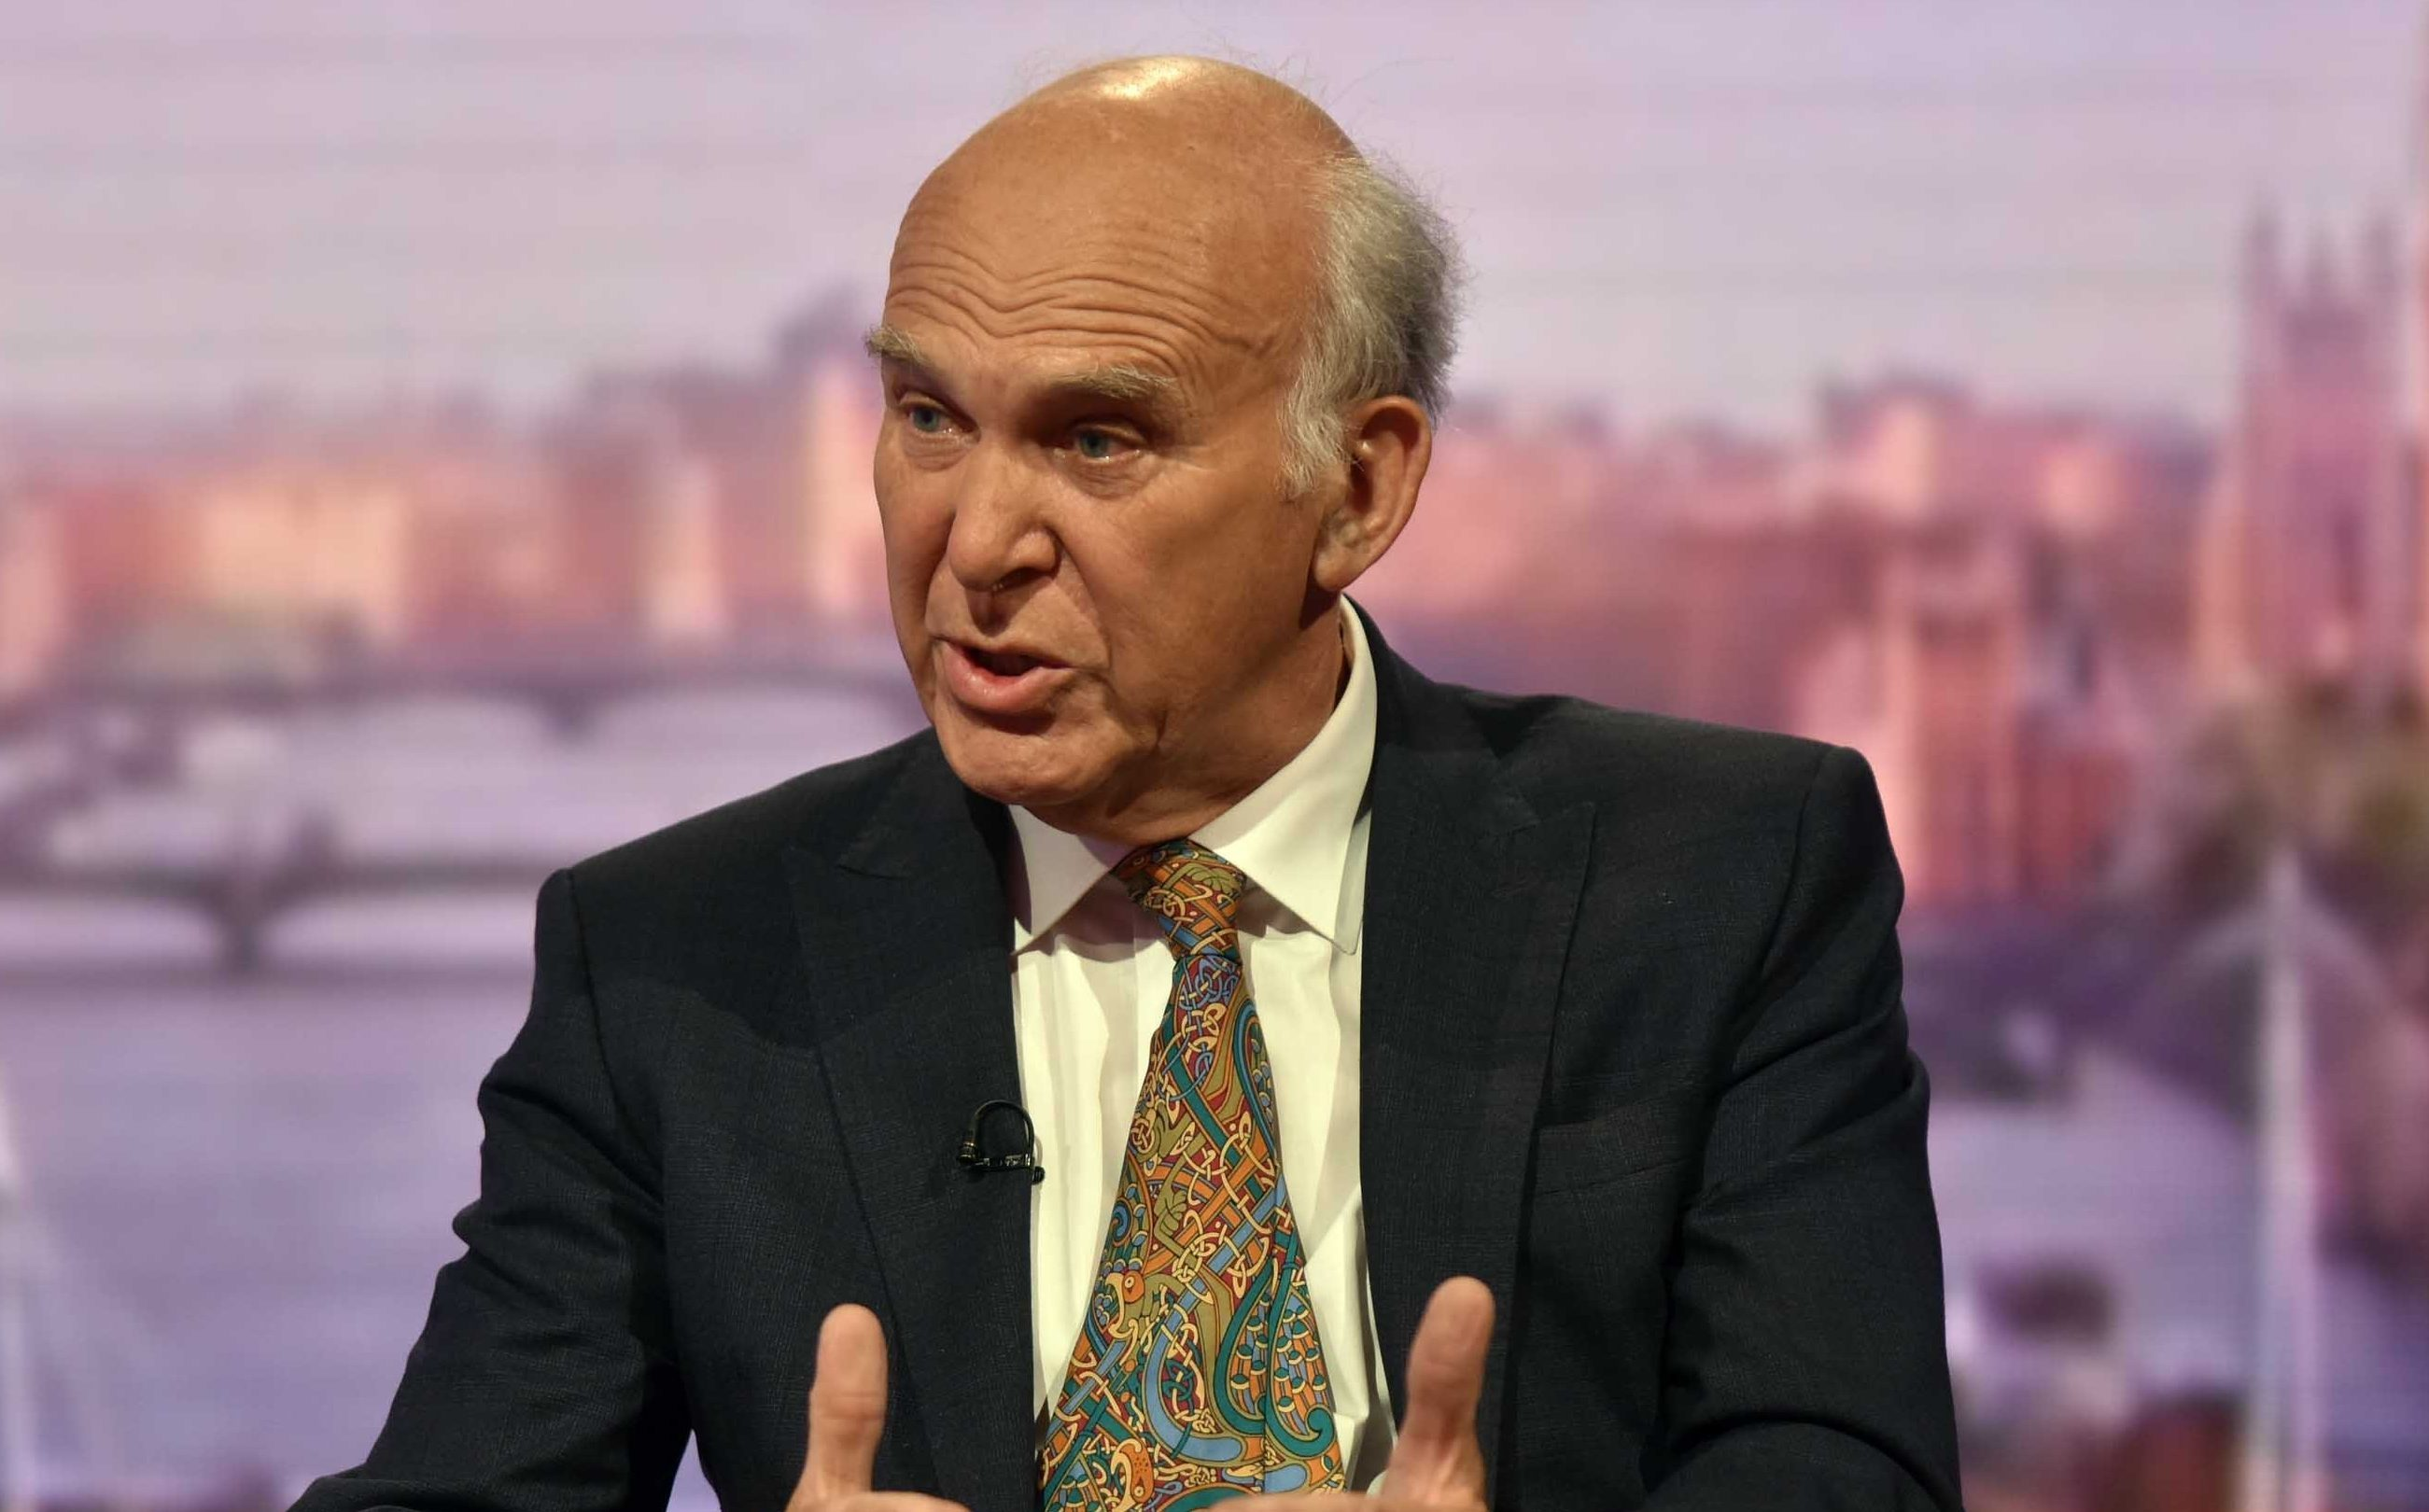 Sir Vince Cable says he has changed his mind and now supports assisted suicide.